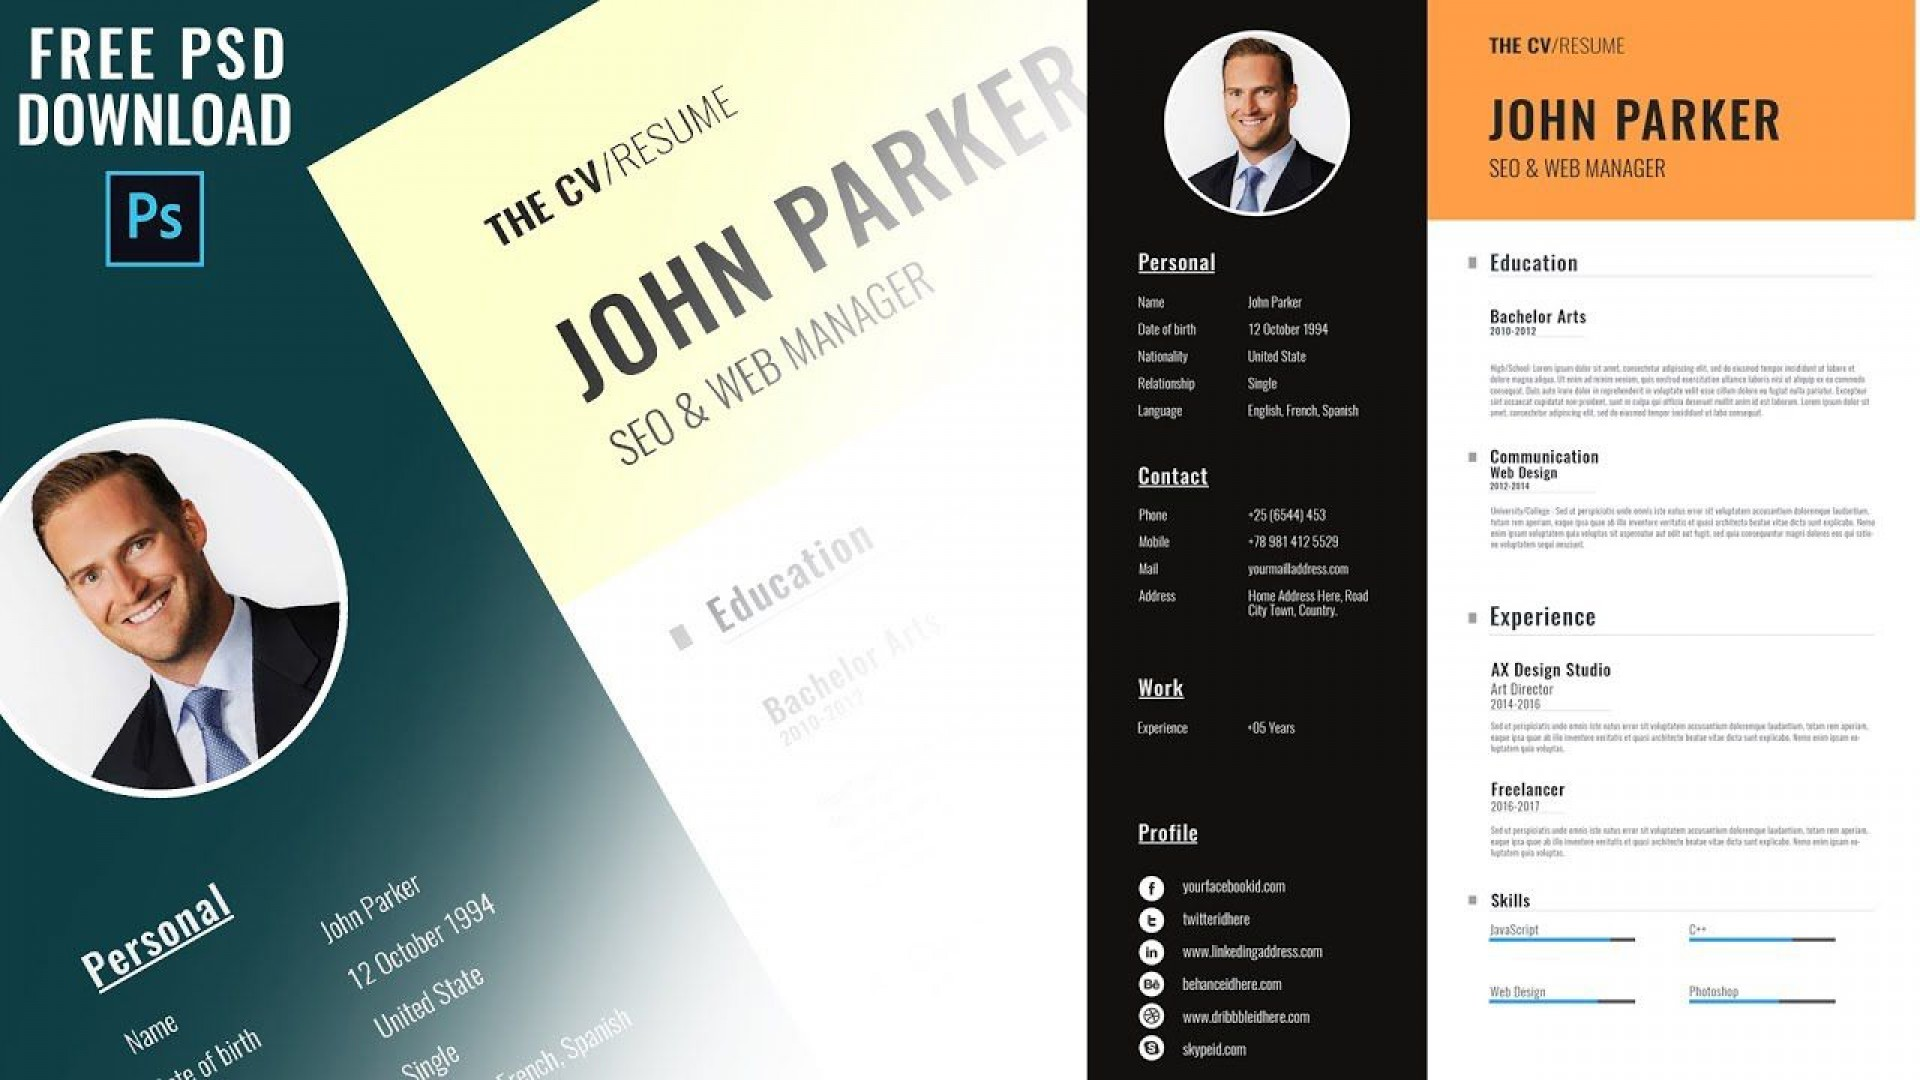 005 Top Psd Cv Template Free Download Example  2020 Graphic Designer Photoshop1920